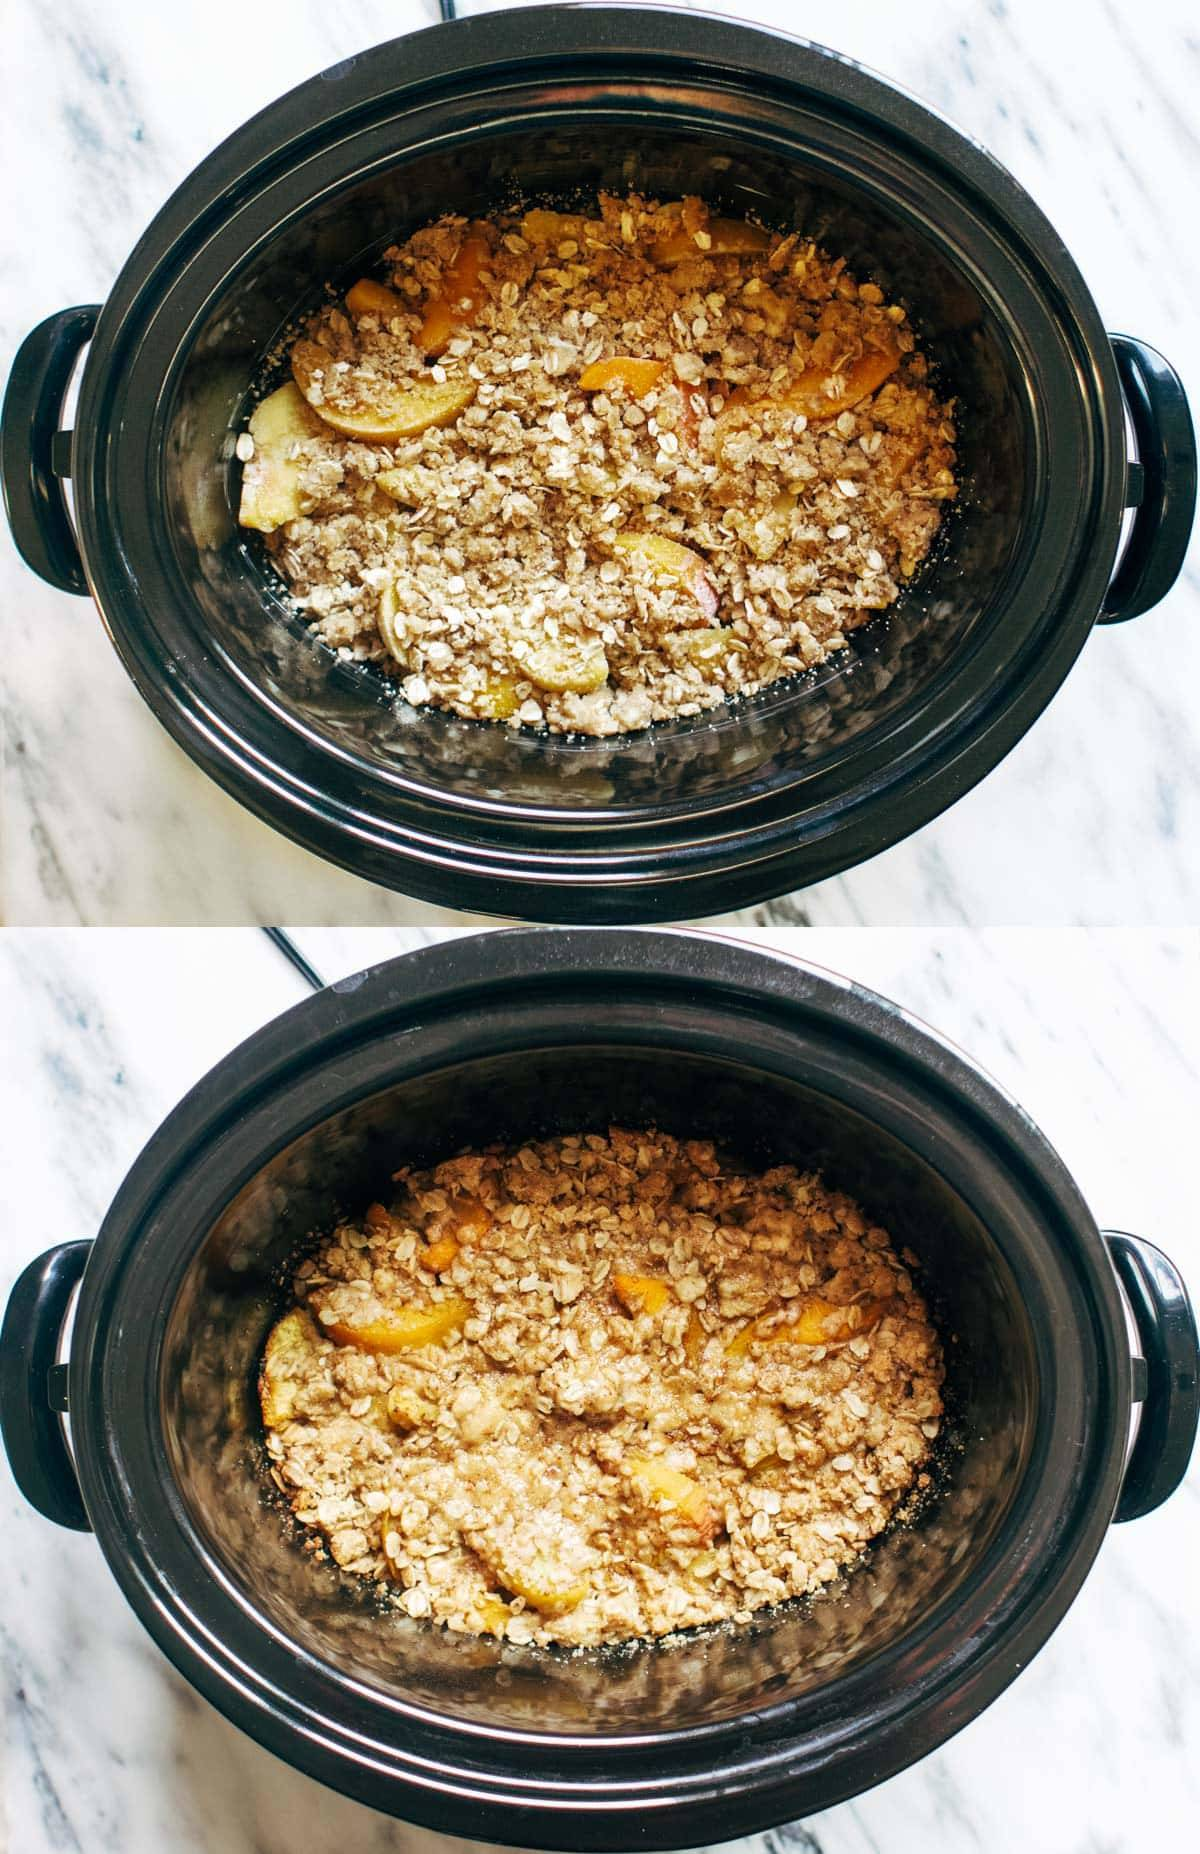 12 SUPER easy recipes you can make in a slow cooker, from veggie lasagna to an entire roasted chicken to pot roast! SO YUM! | pinchofyum.com